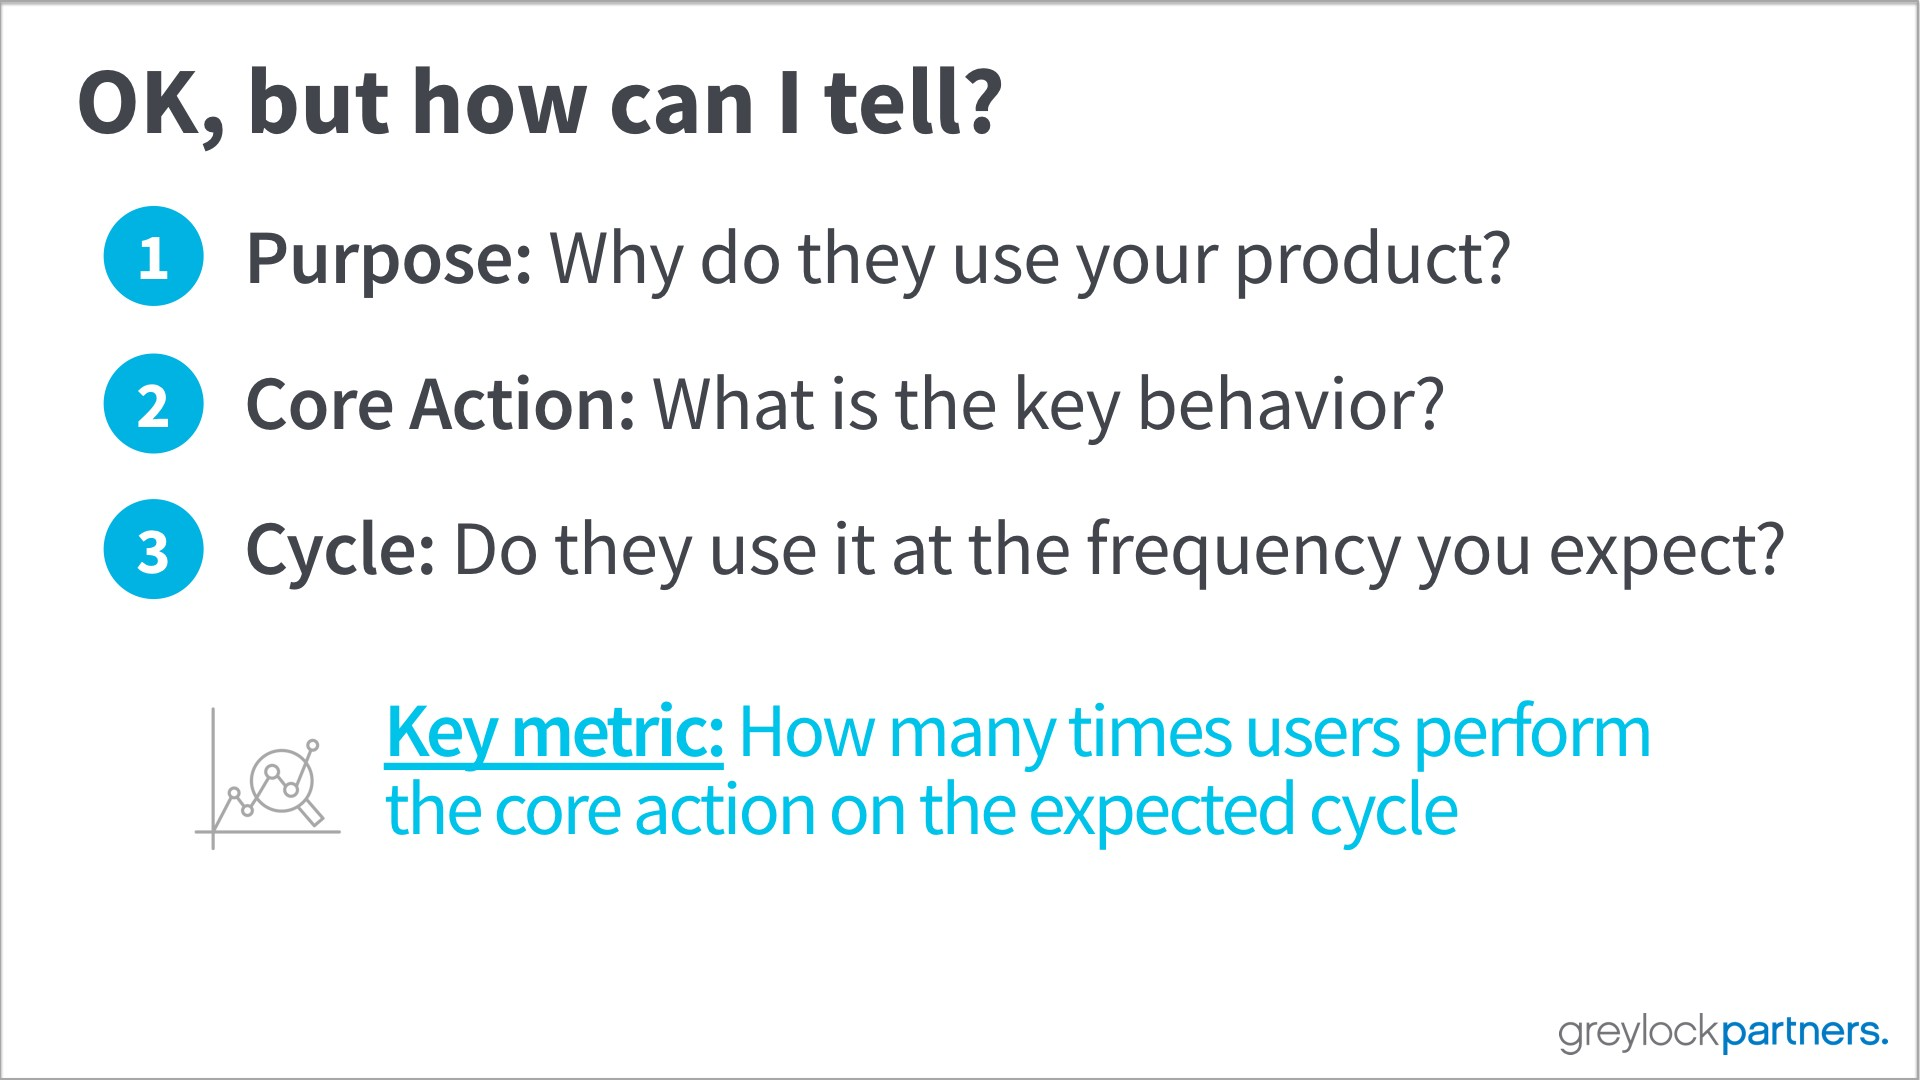 name one key activation metric